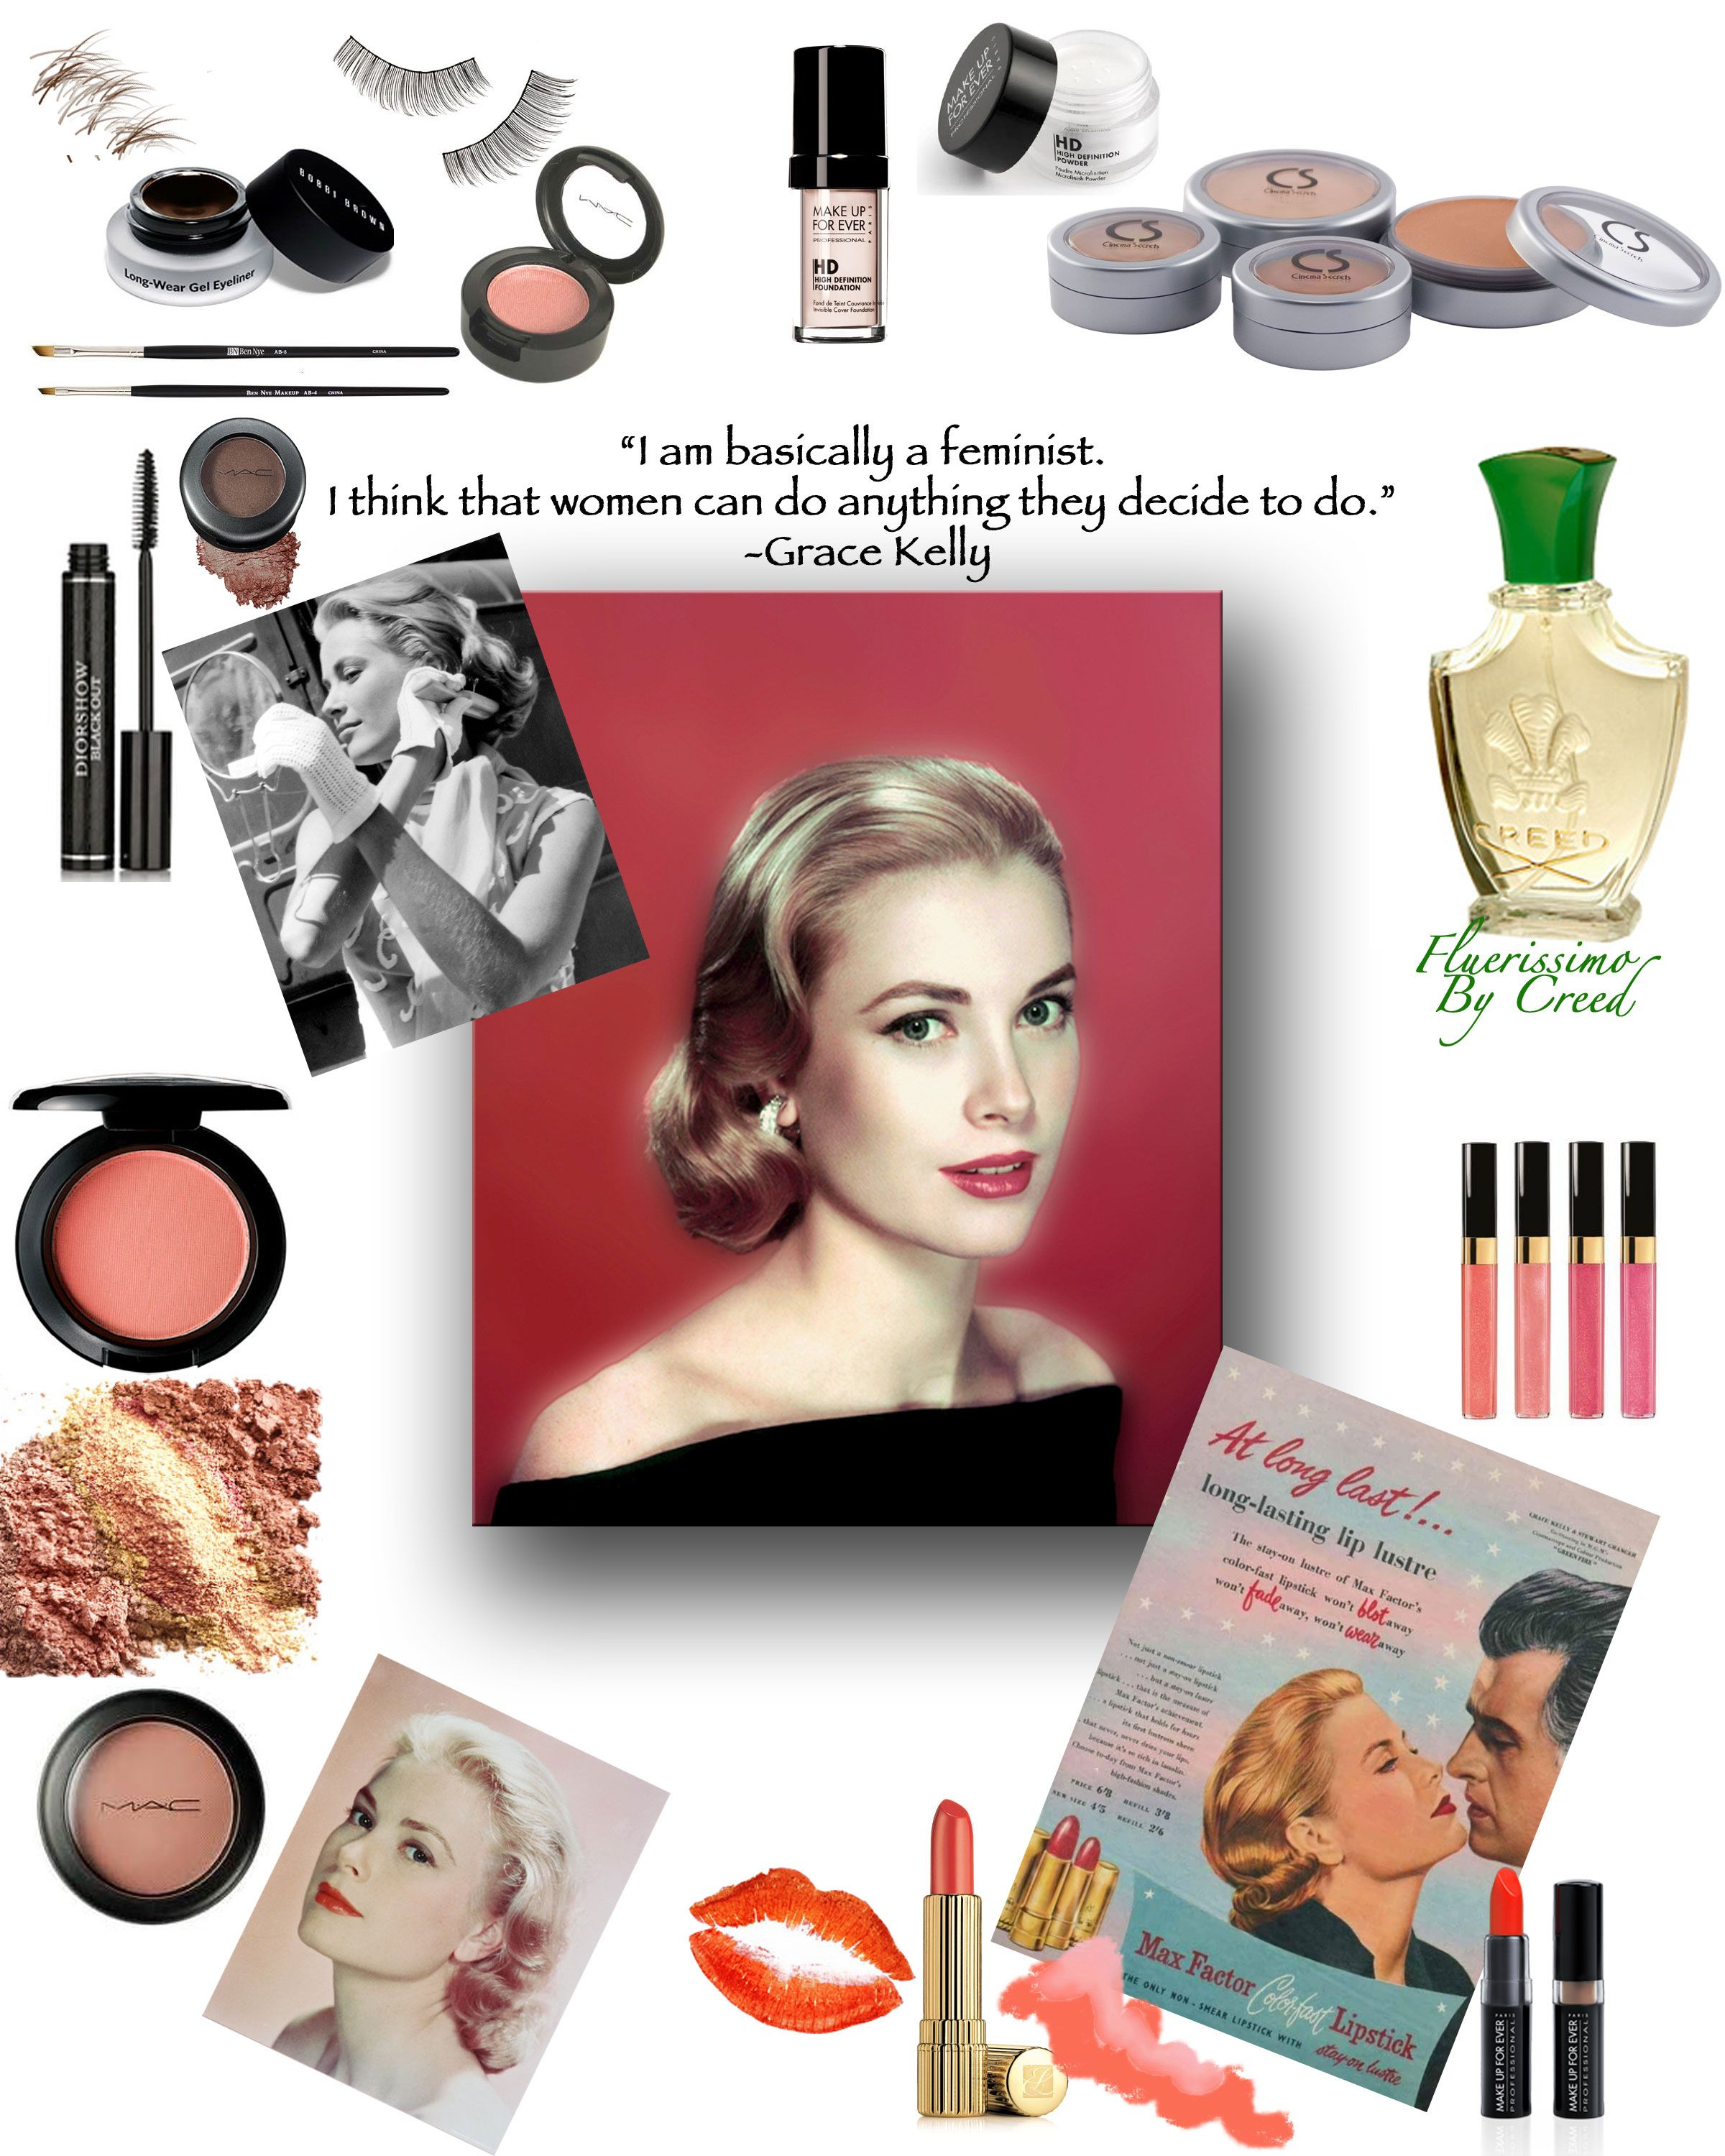 Channel Your Inner Grace Kelly Pin Up!